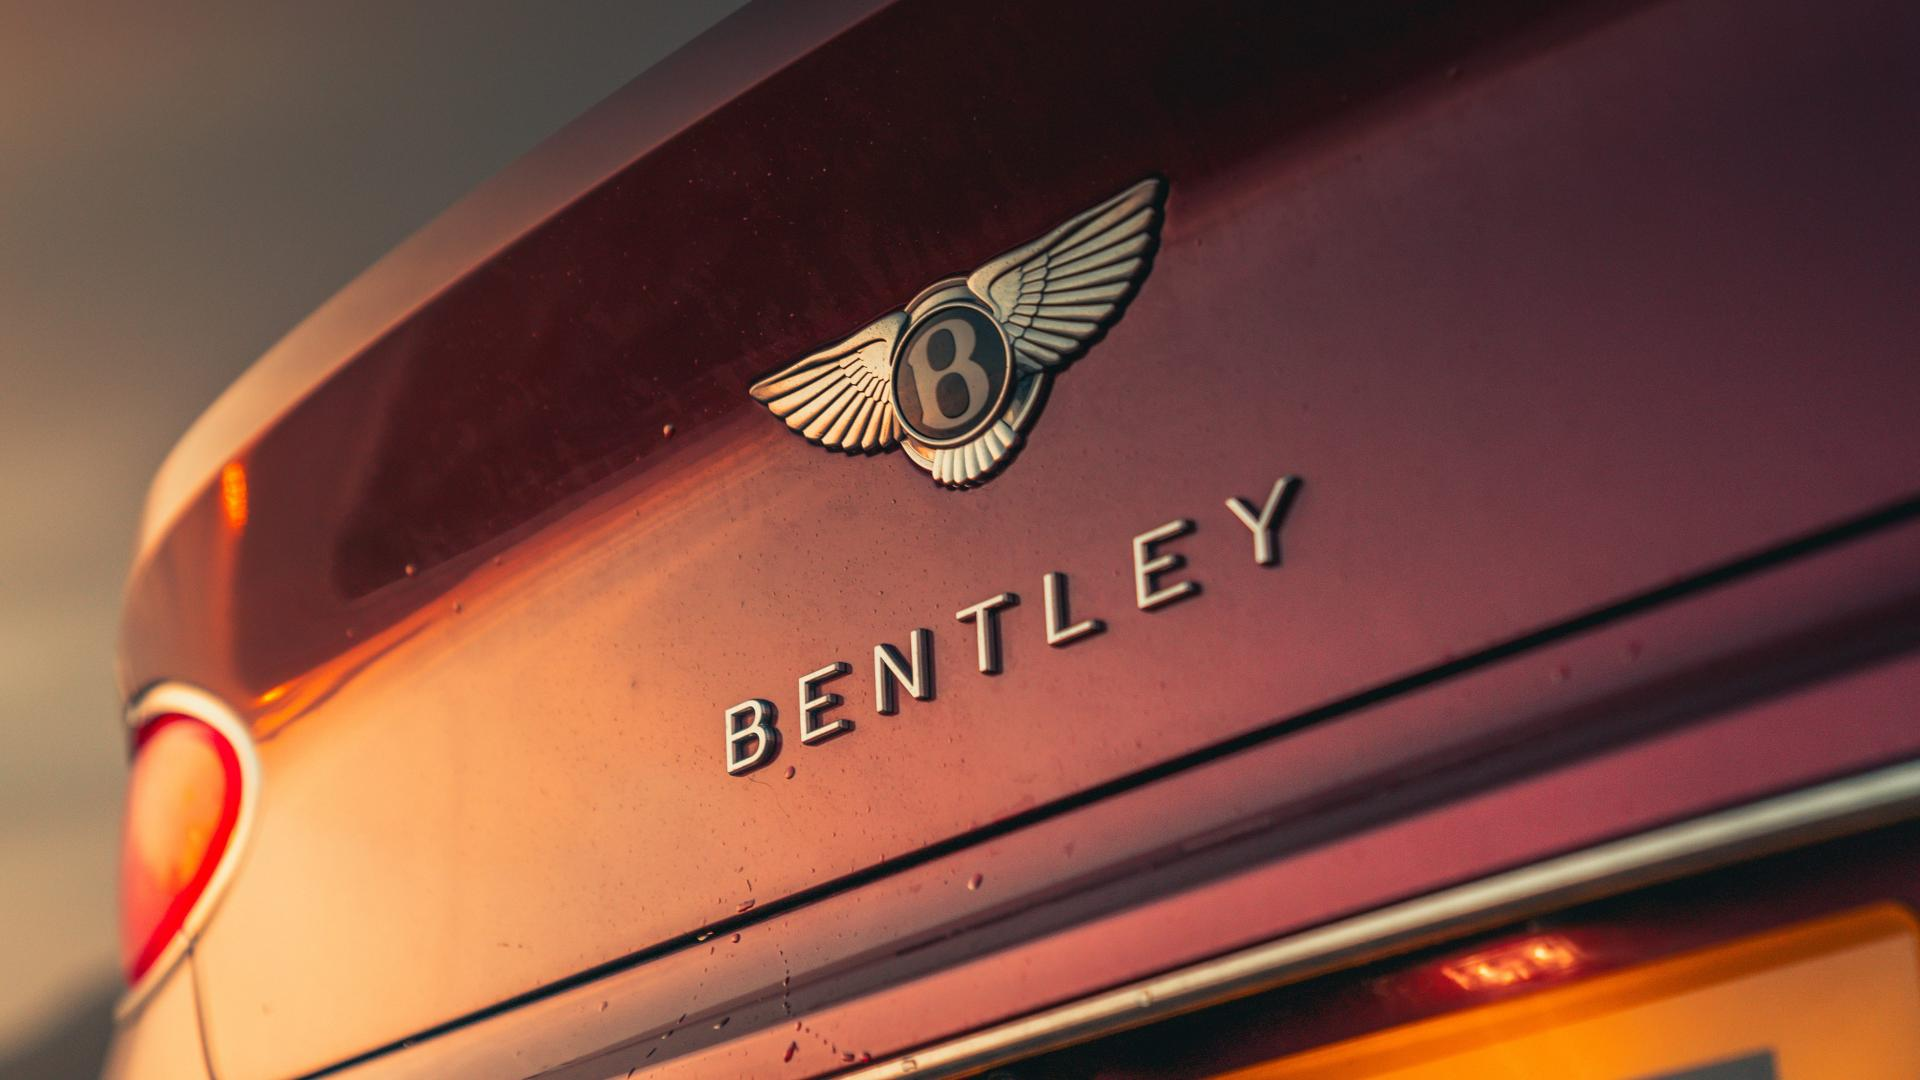 Bentley Continental GT achterklep badge